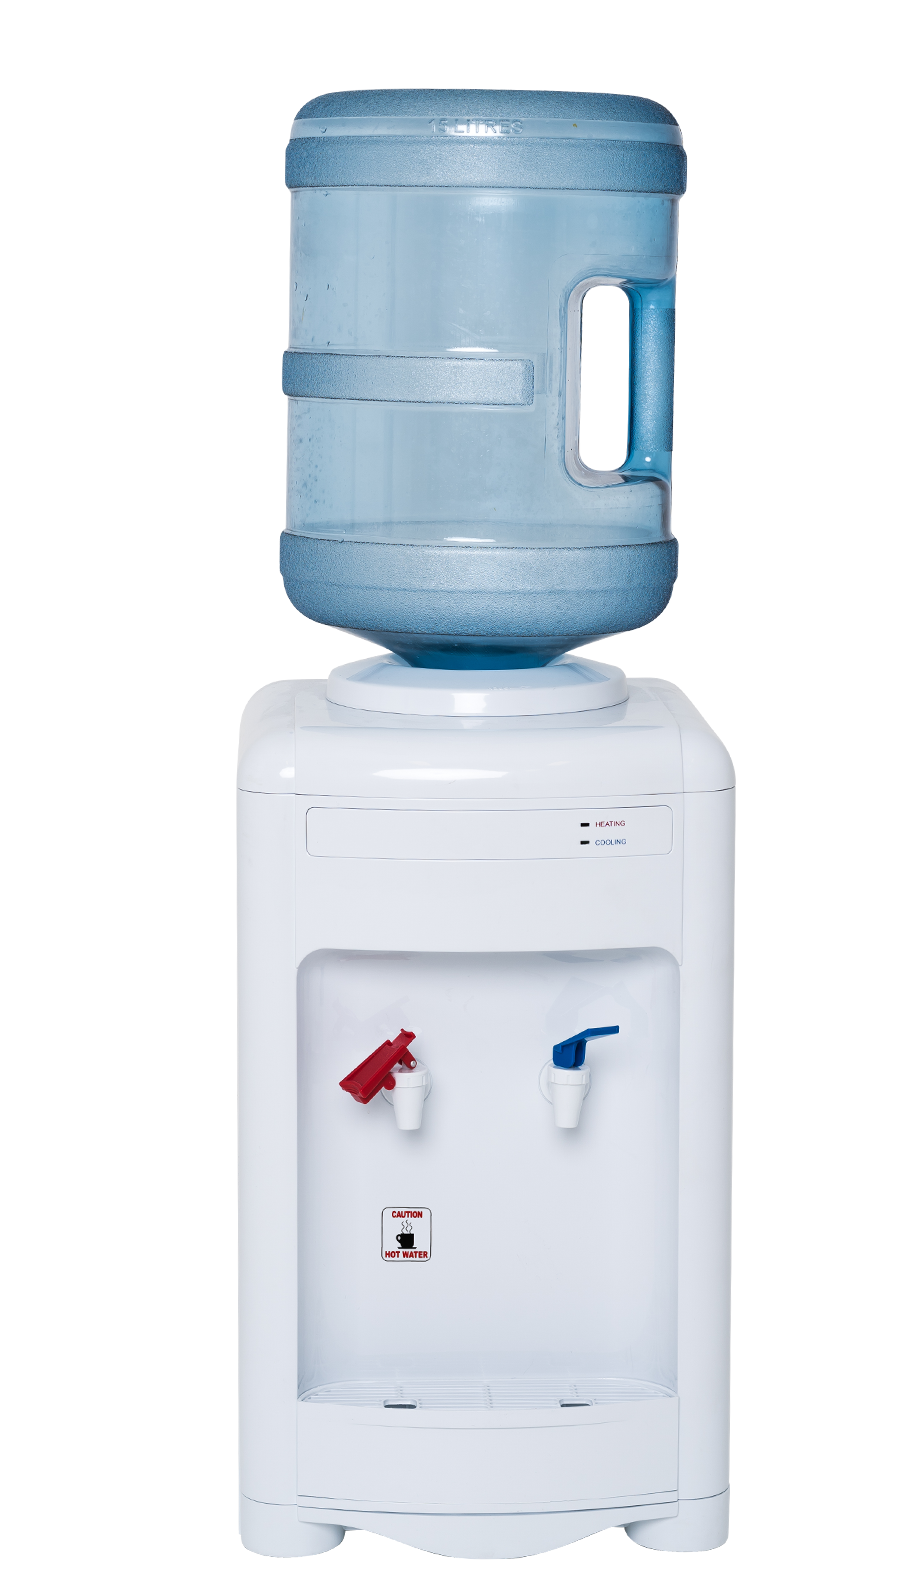 Water clipart cold water. Allure series aqua cooler